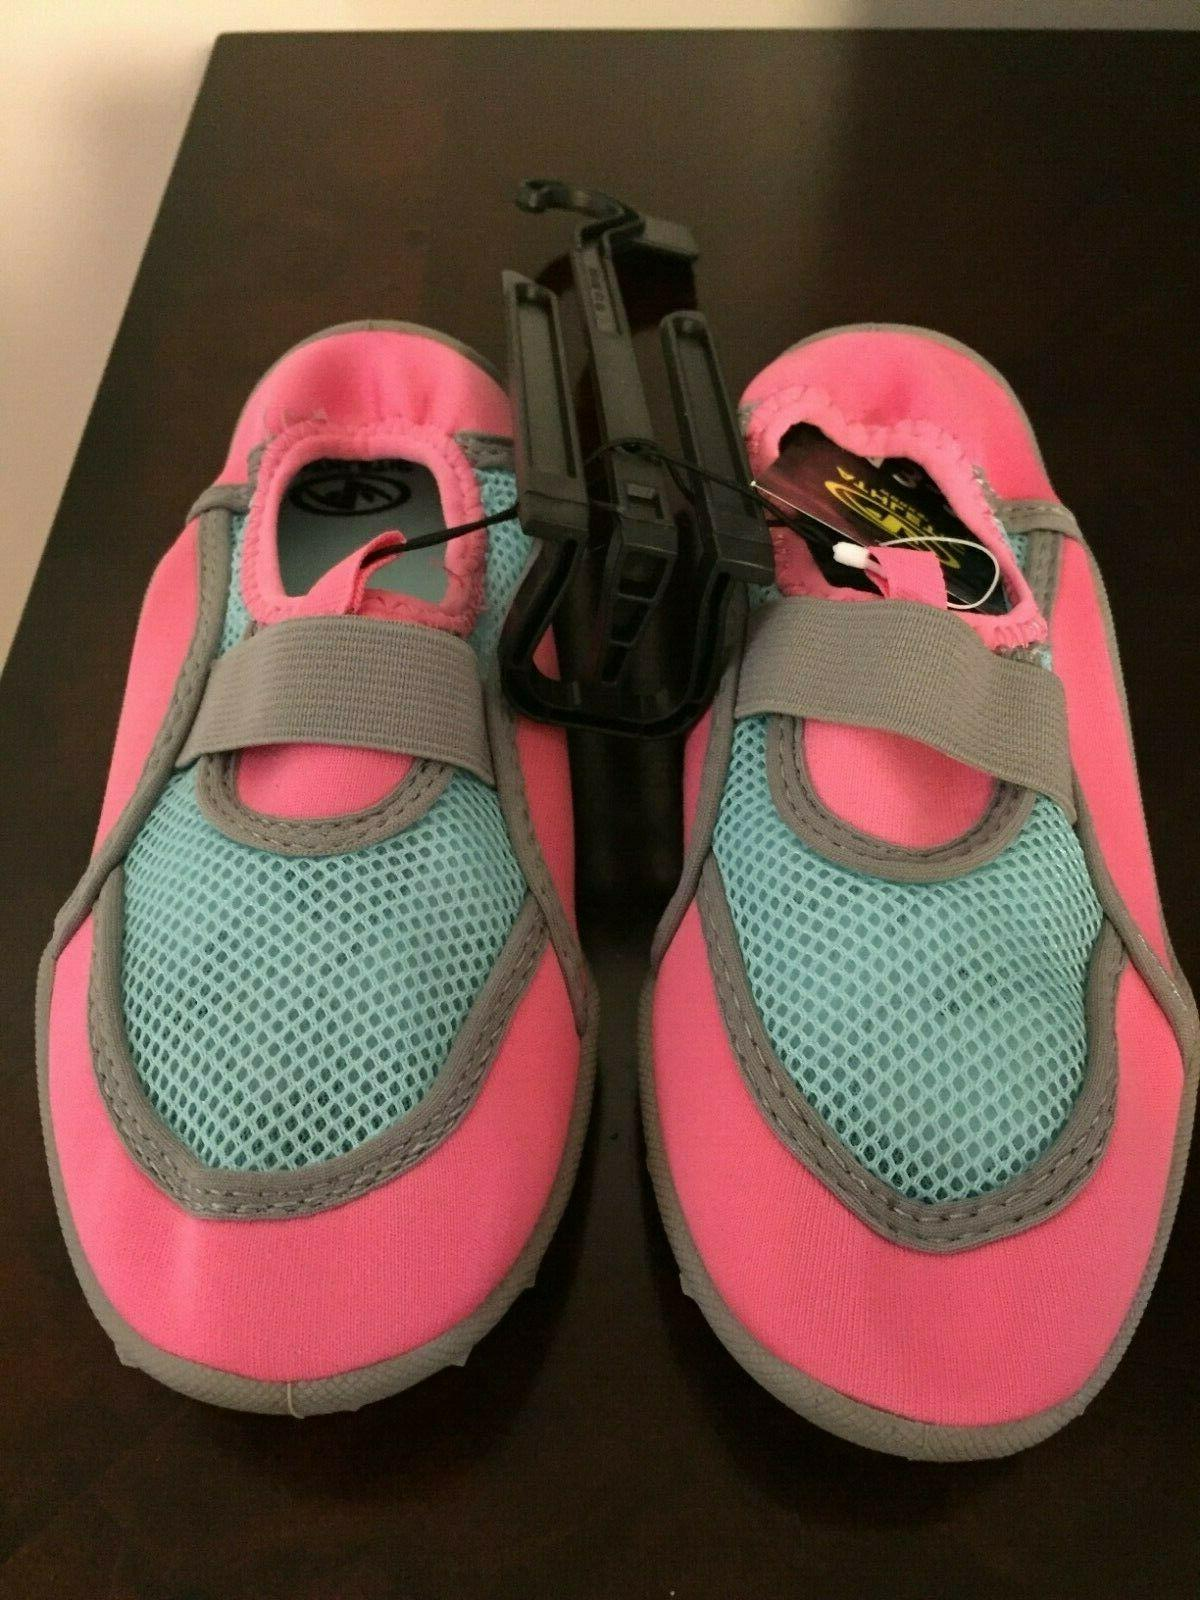 BRAND GIRL'S SIZE 4-5 WATER SHOES